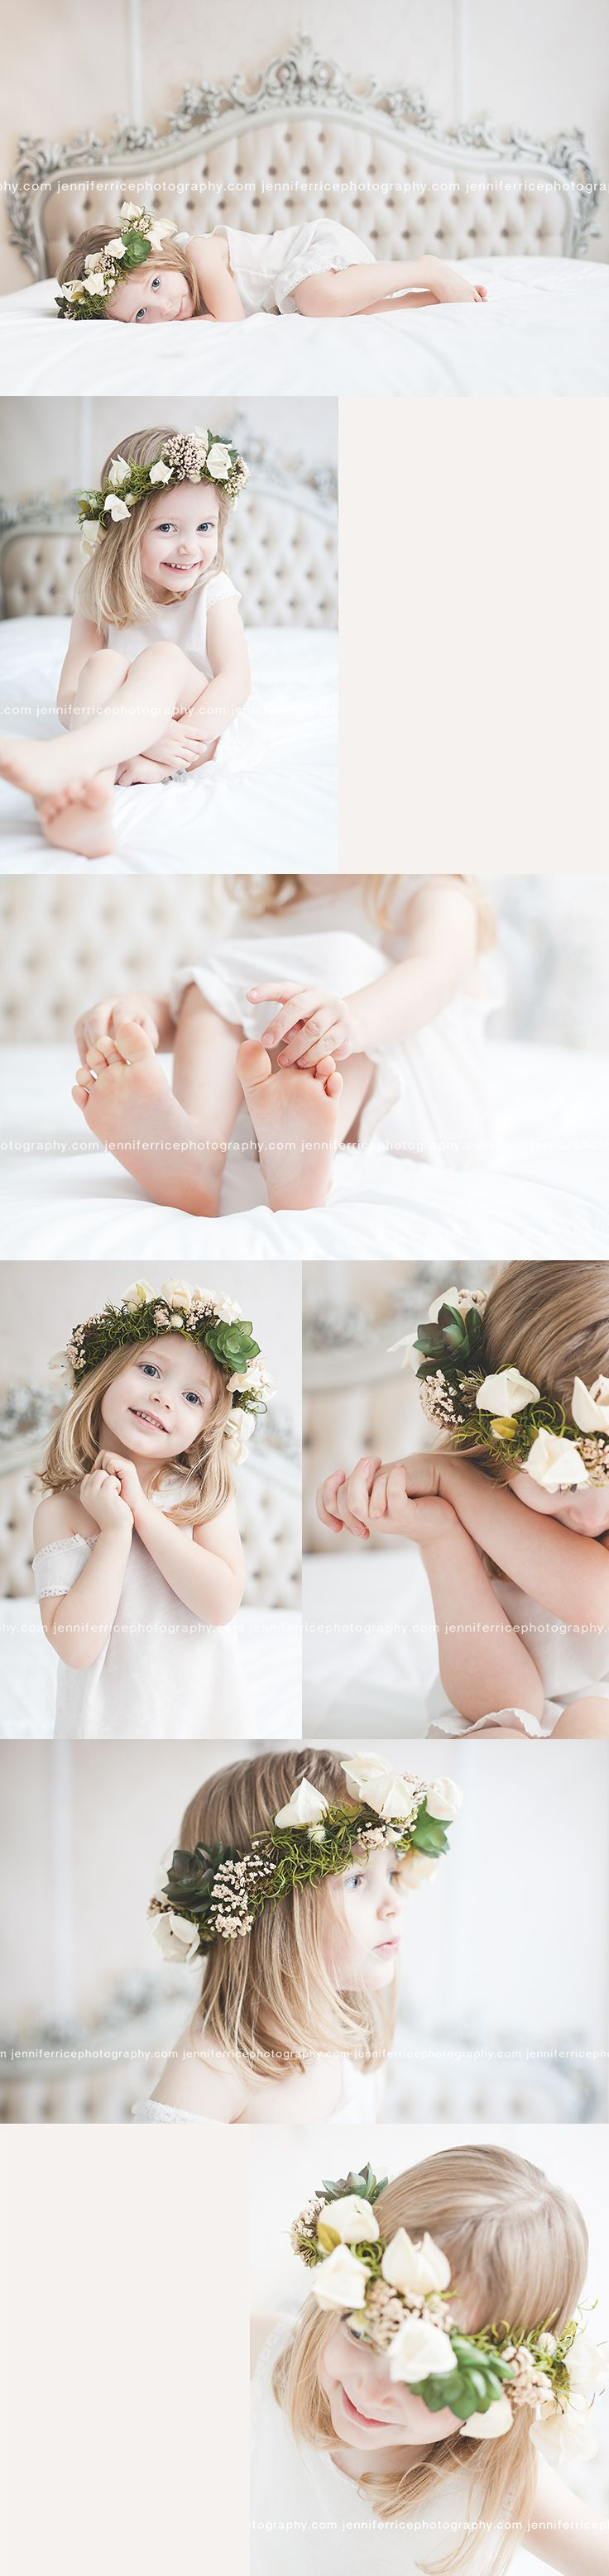 Jennifer Rice Photography | pretty vintage child session, flower crown, children's photography | jenniferricephotography.com My beautiful lil' Alexis ♥ her so much!